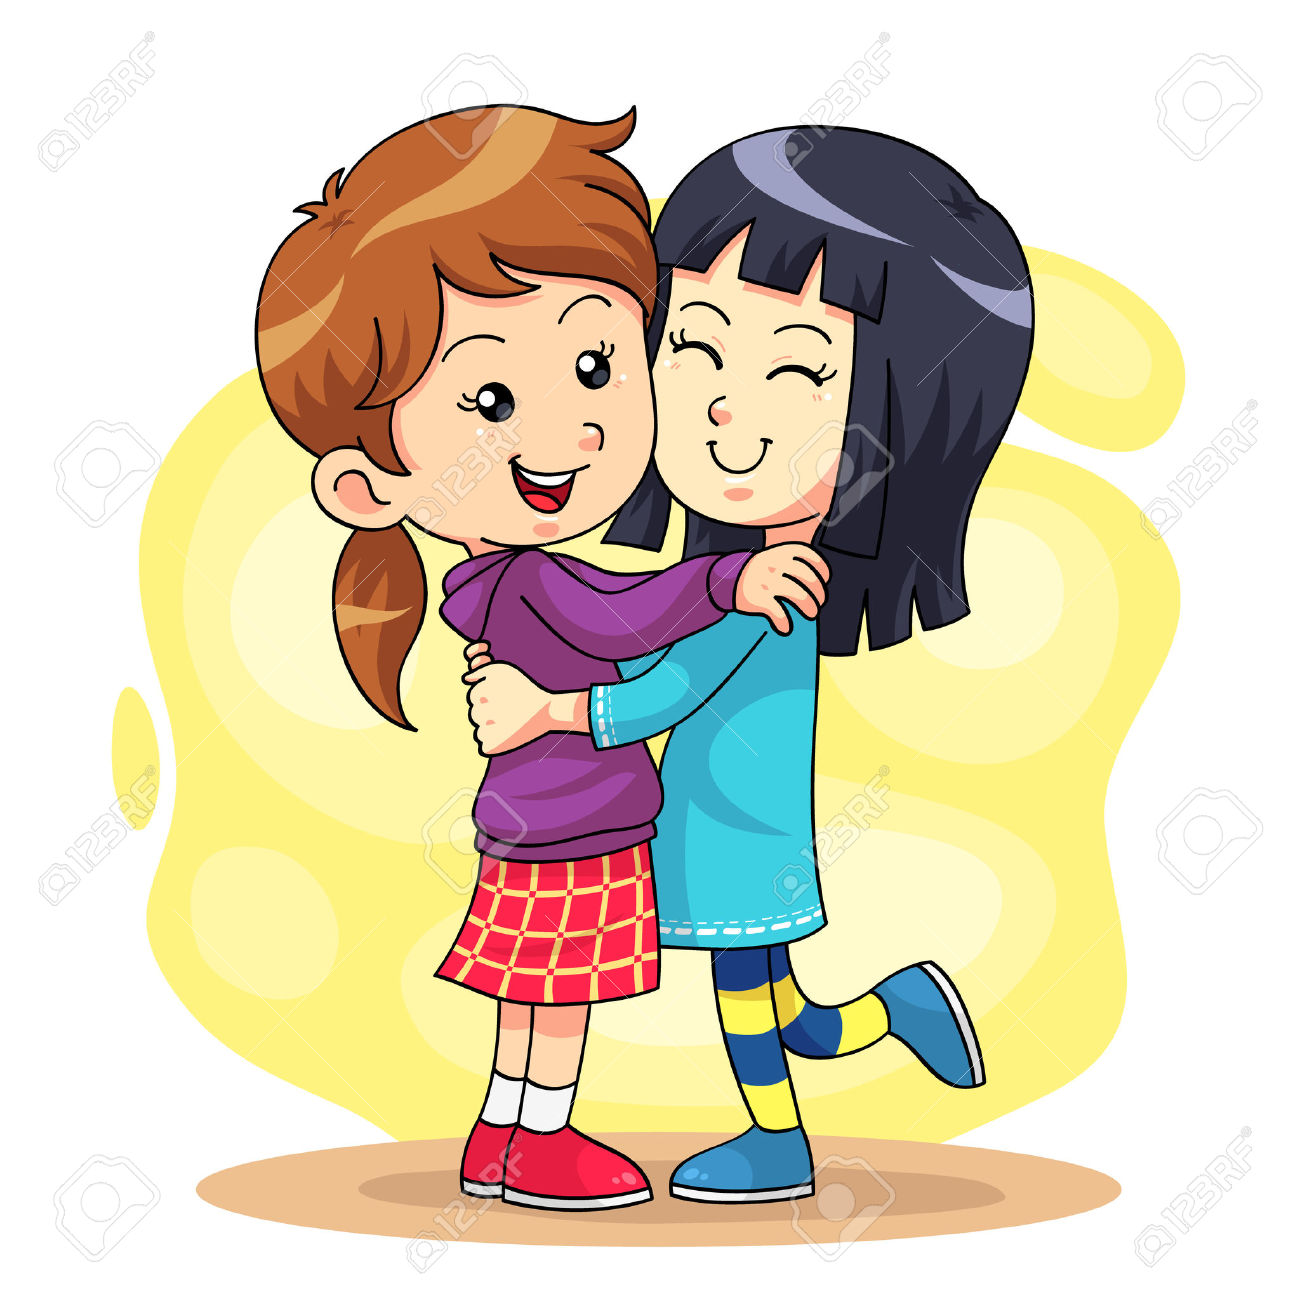 Friends hugging clipart 4 » Clipart Station.